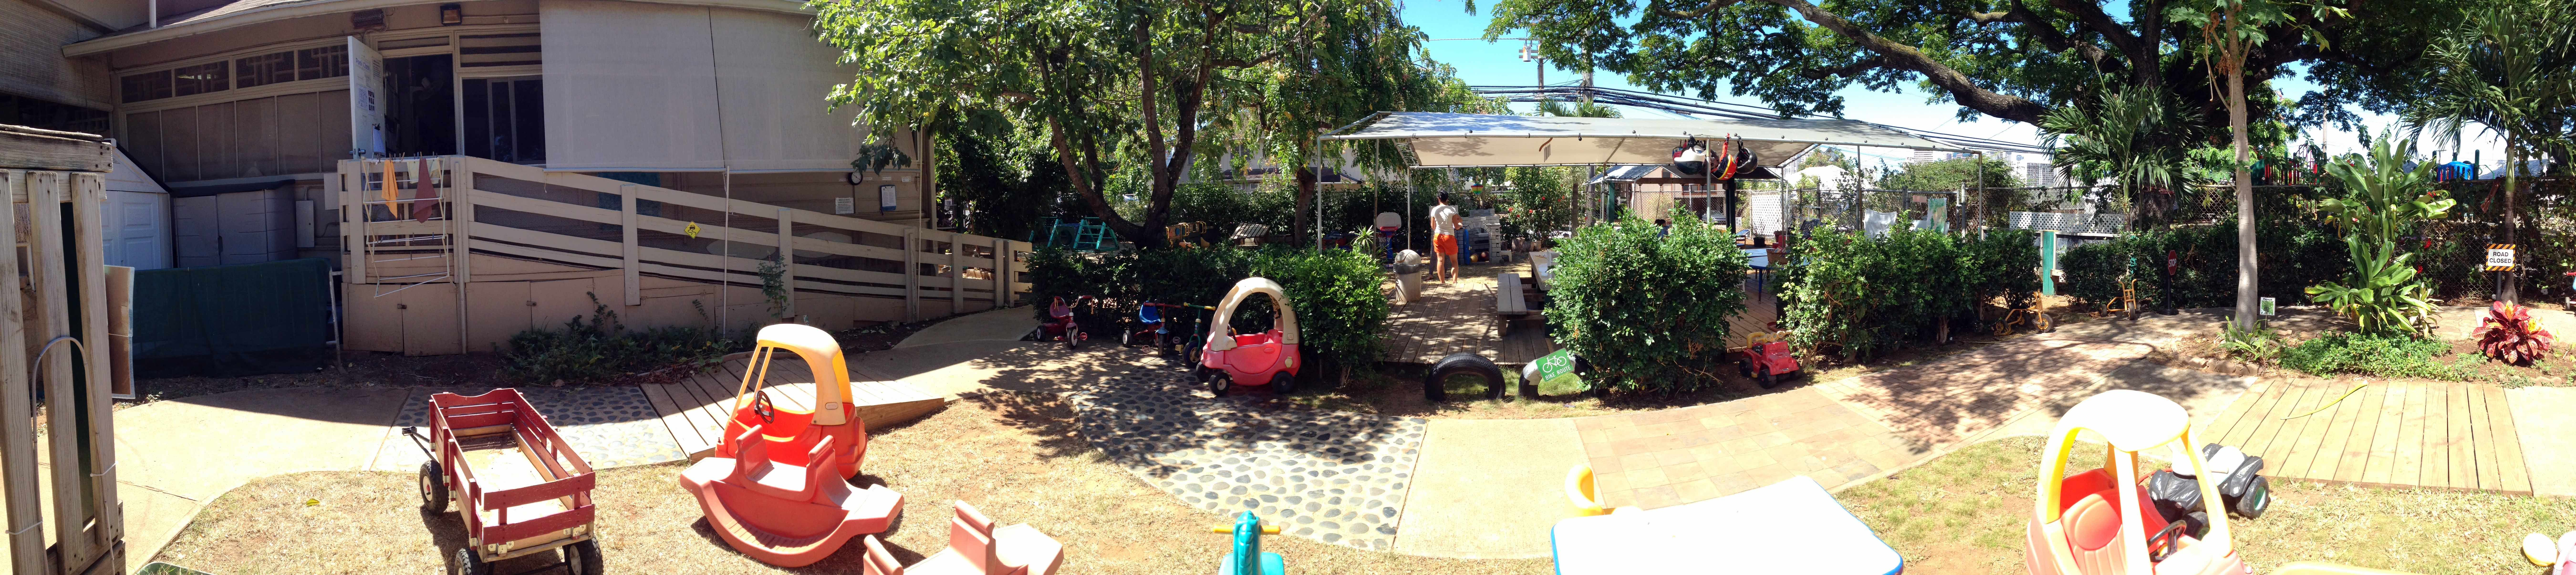 toddler playground pano 2